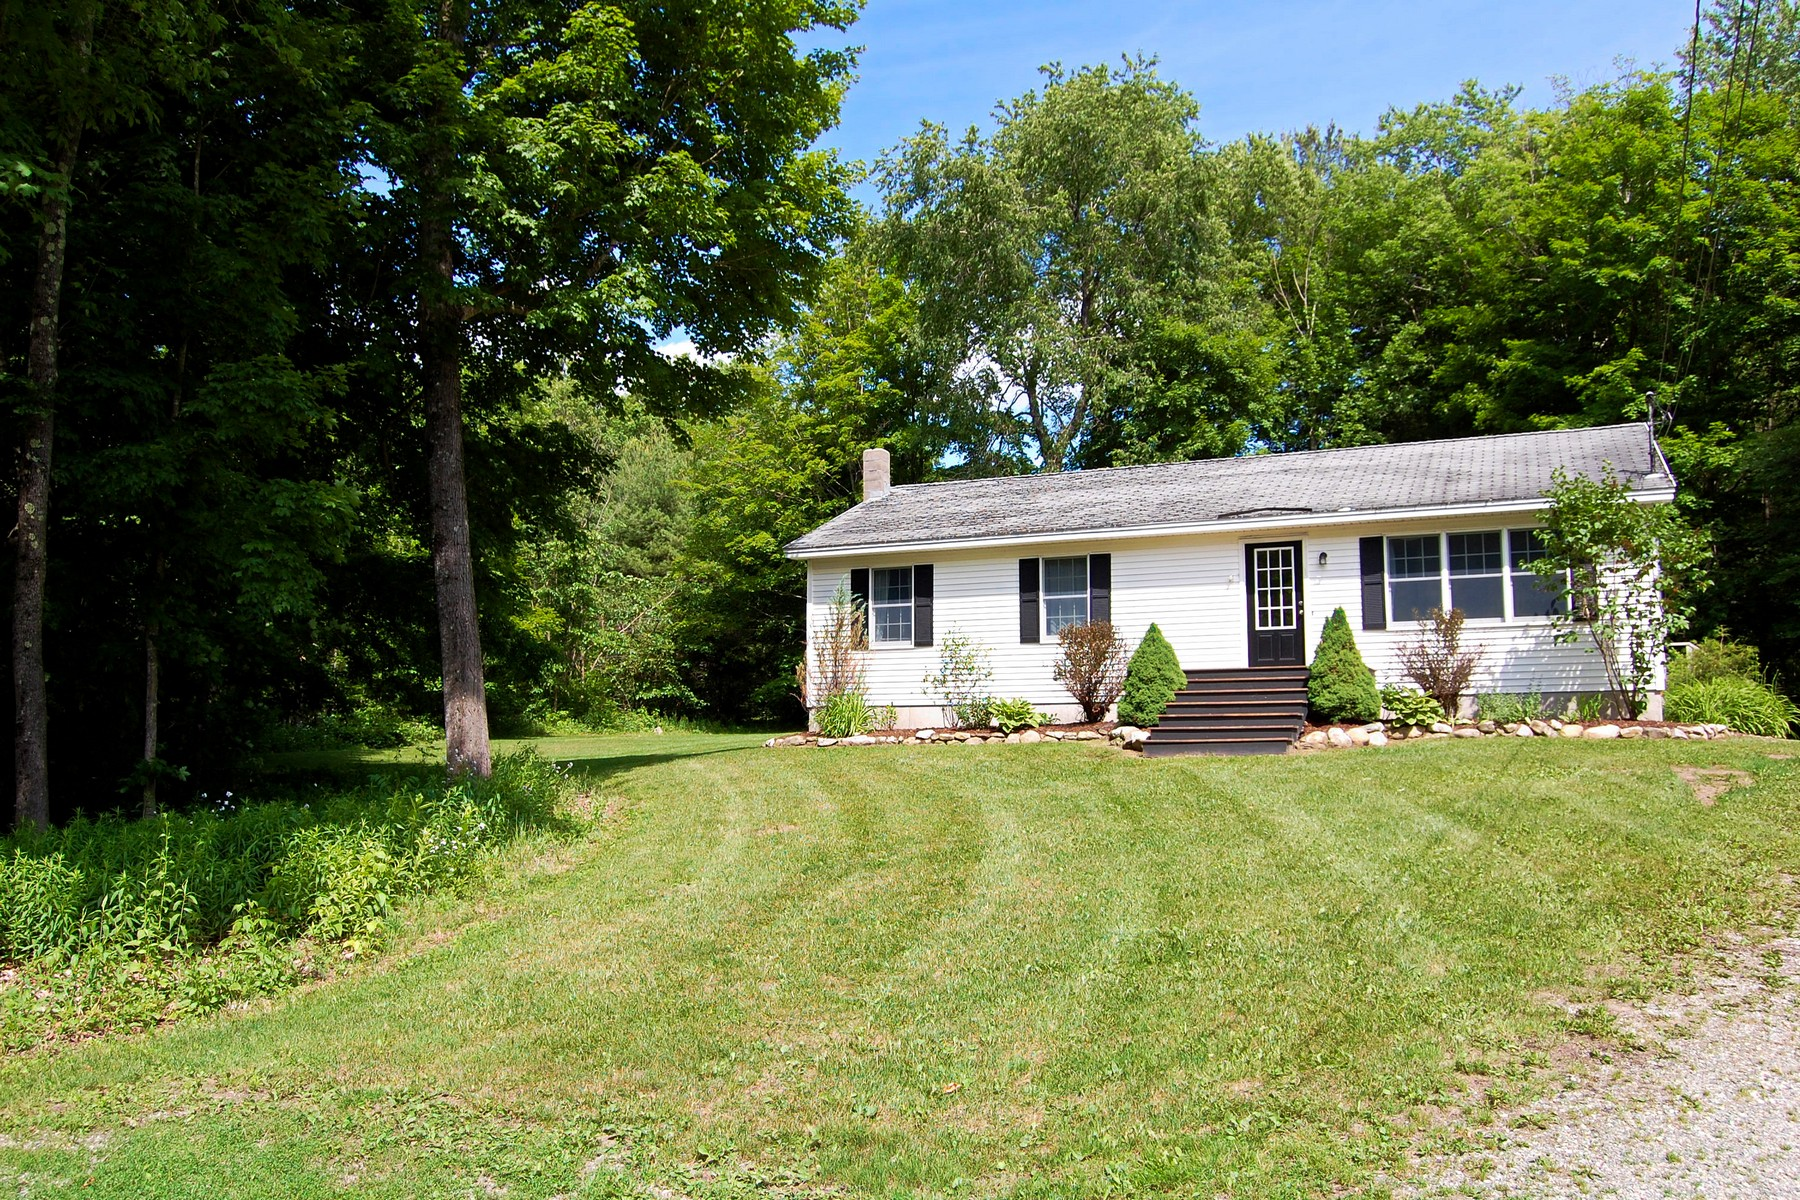 278 Village St, East Dorset, VT 05253